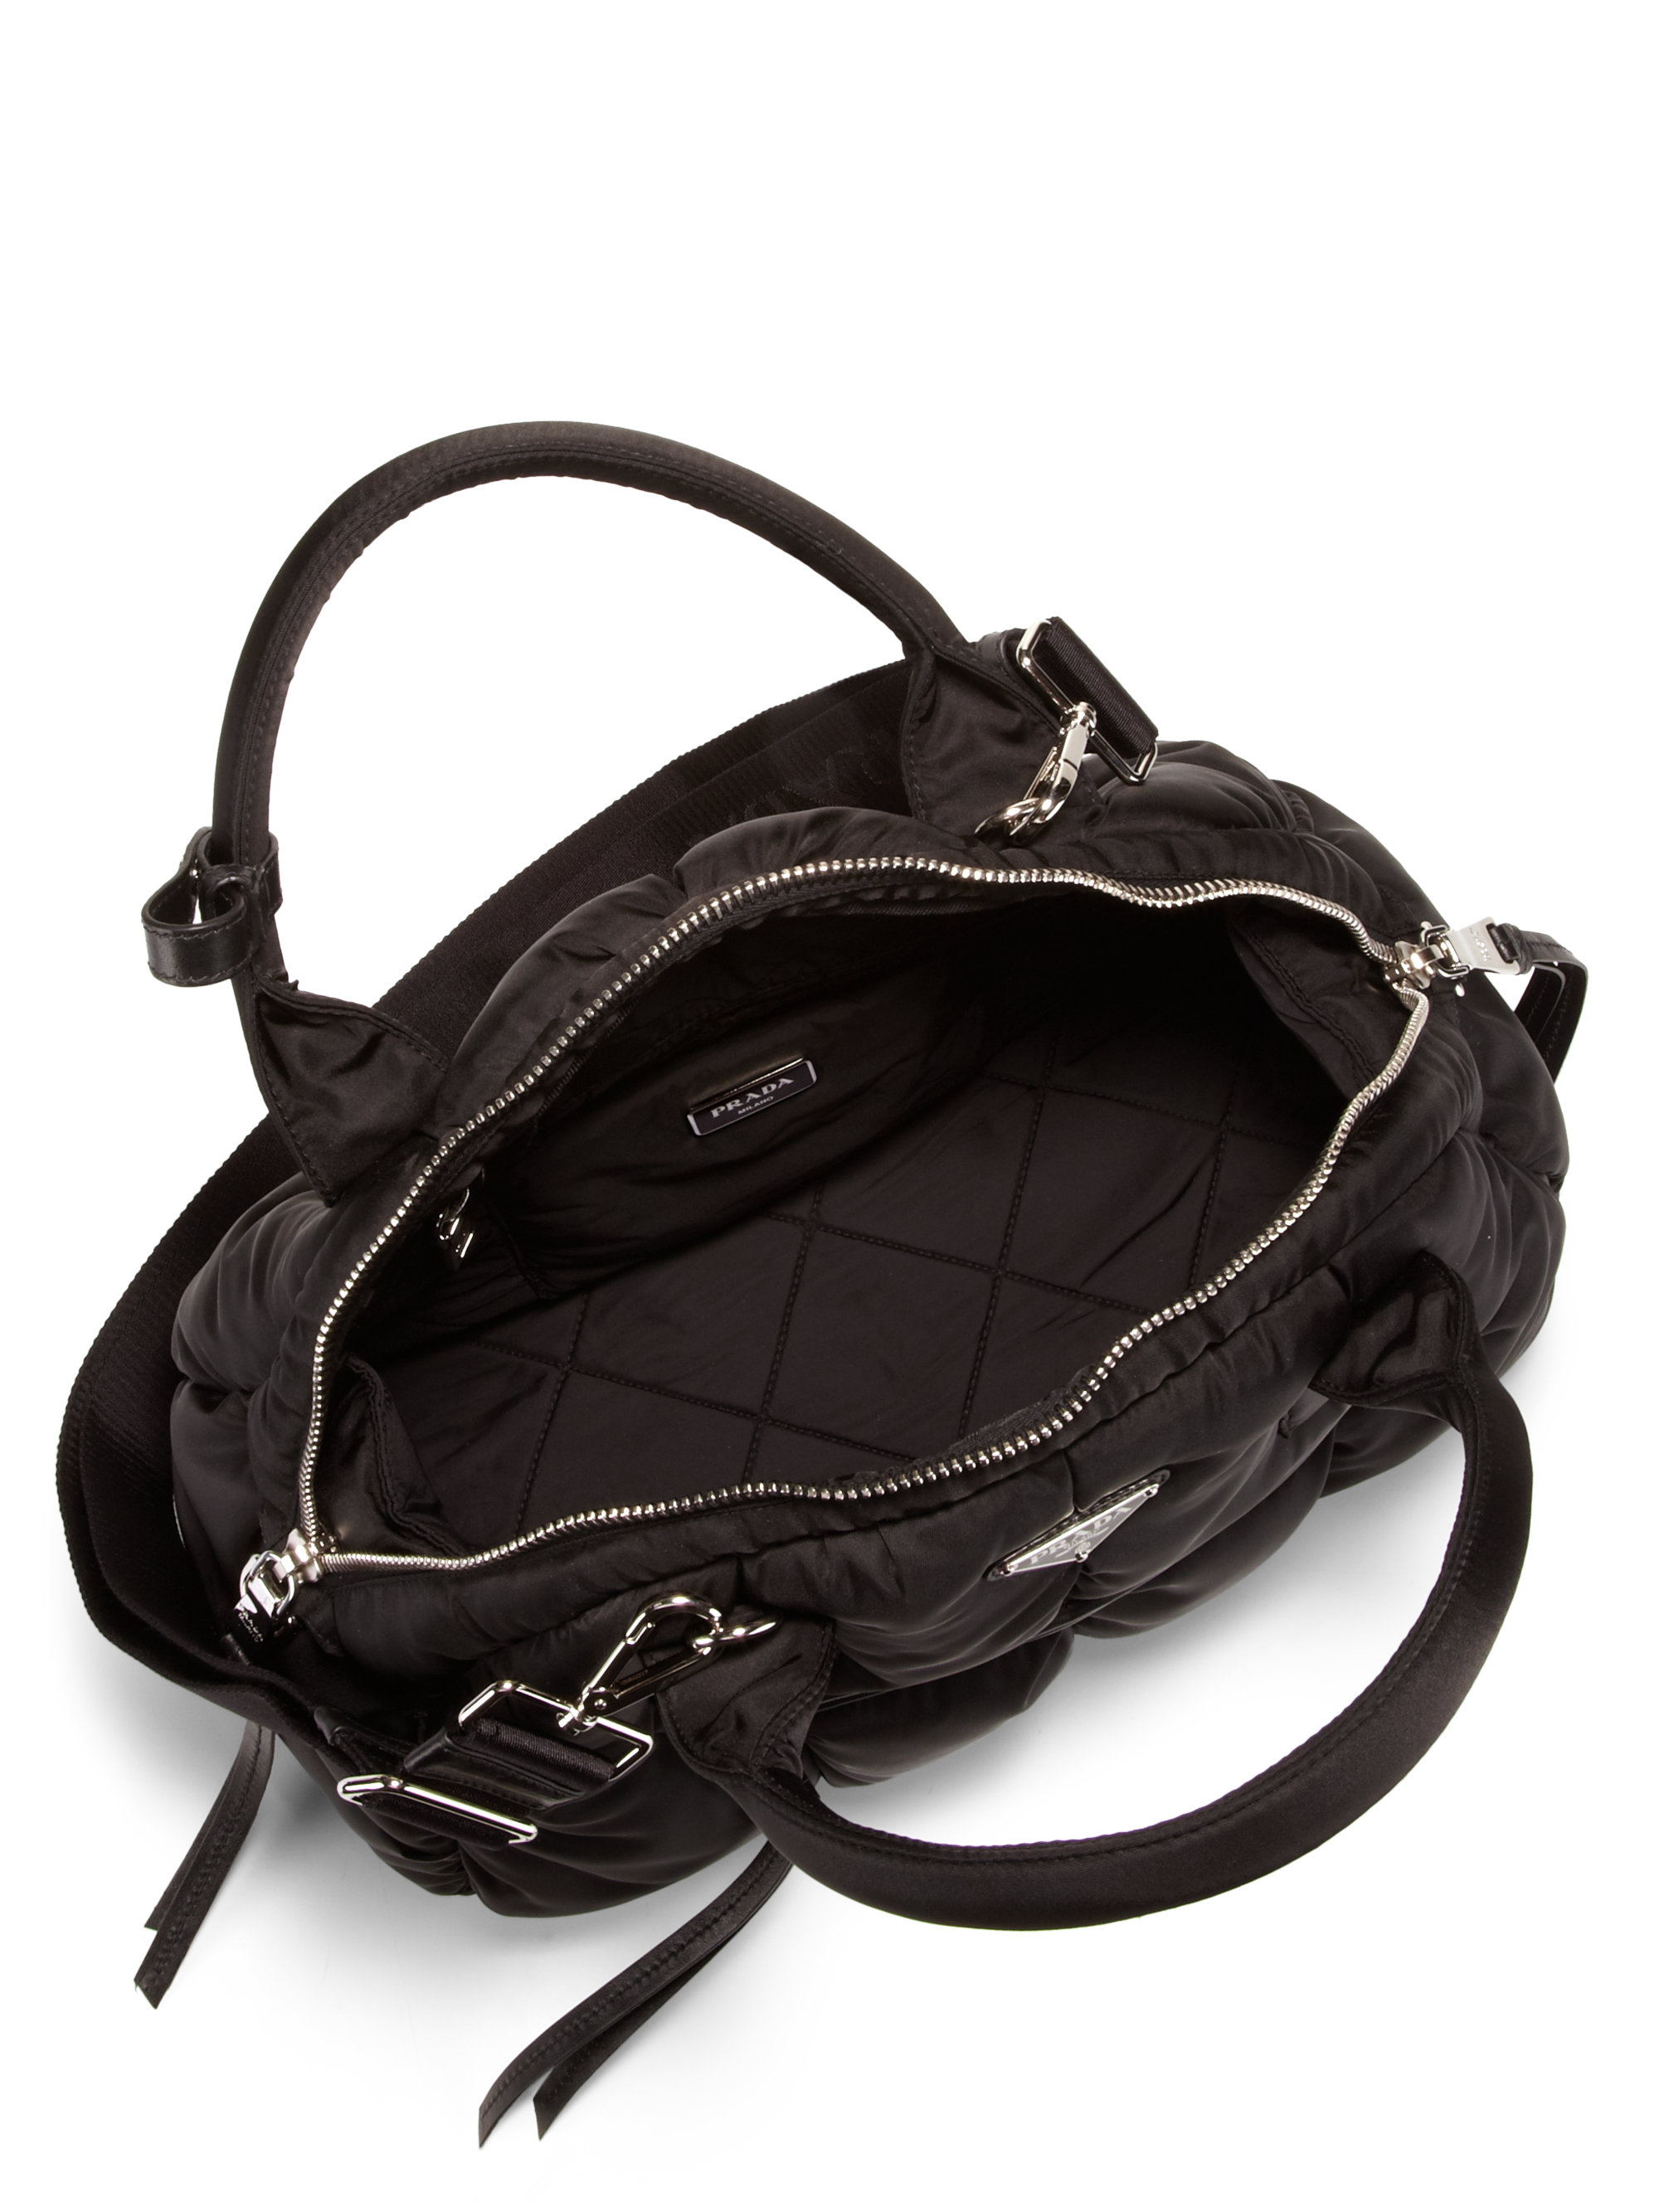 918b7c42a5a6 ... discount code for lyst prada tessuto bomber bowler bag in black 3f138  46ded